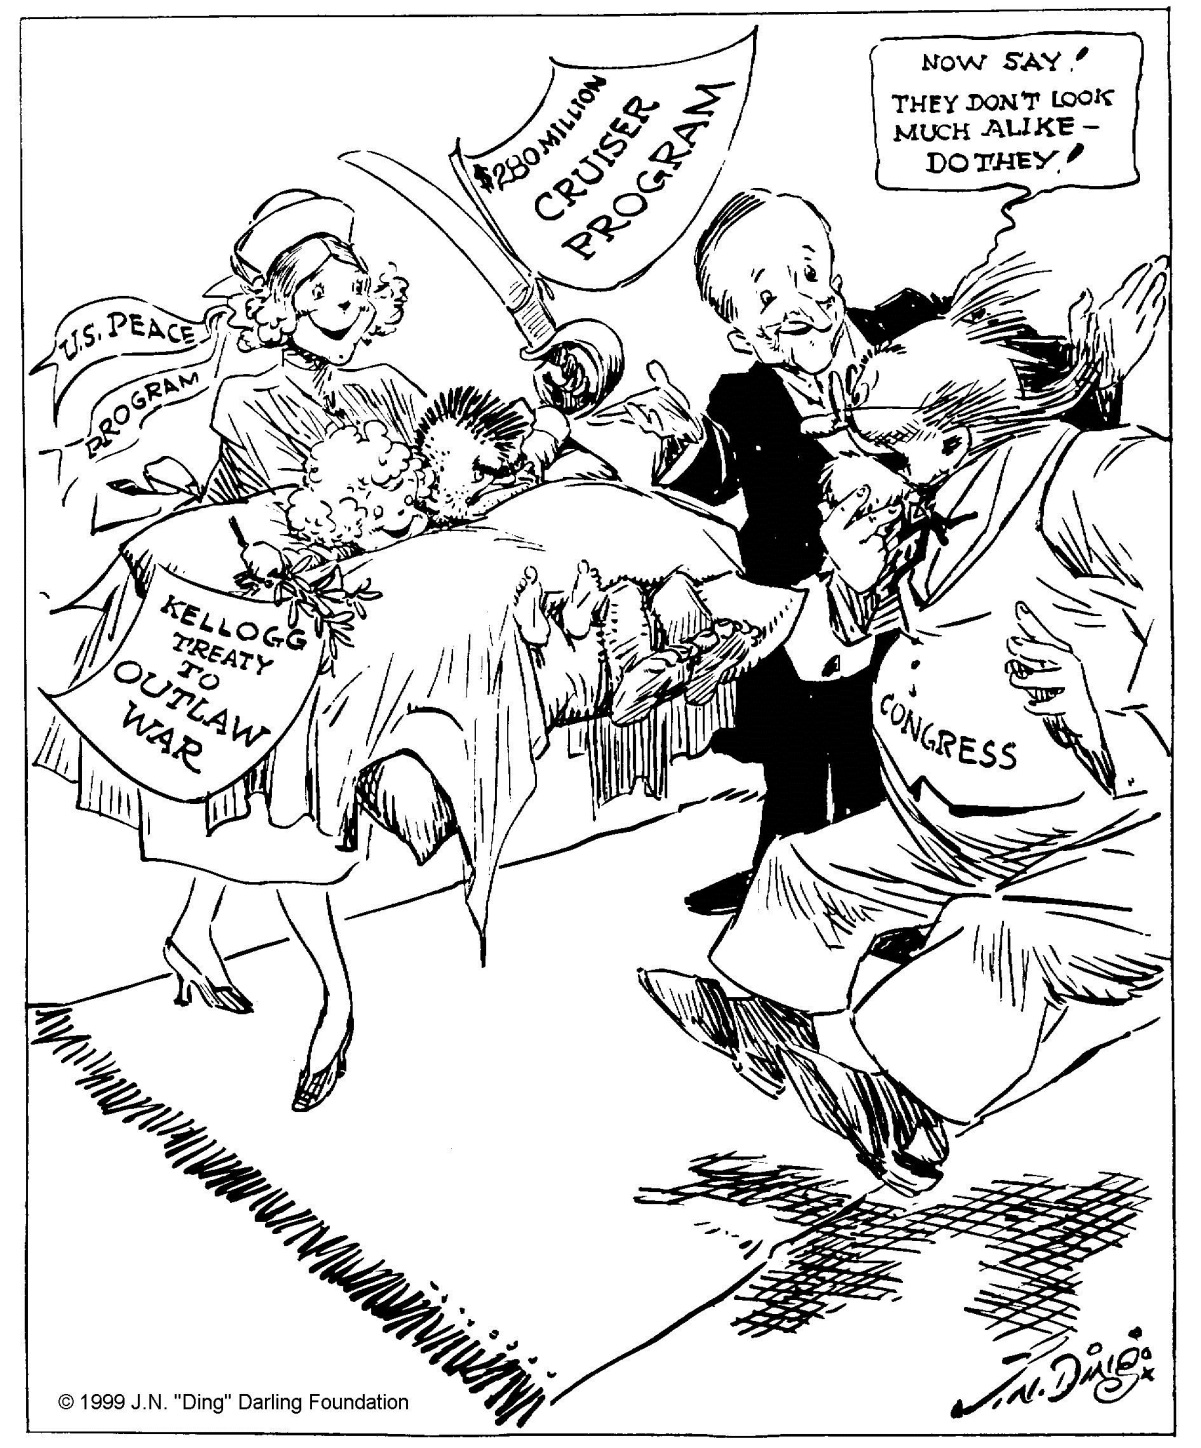 """Presenting him with twins,"" by ""Ding"" Darling, The Des Moines Register, November 28, 1928. Despite the cartoonist's not-so-veiled criticism at perceived inconsistency between these twin policies advanced by Coolidge, Cal reminds us that peace and adequate defense go hand-in-hand. One does not undermine the other. Cartoon courtesy of the Ding Darling Foundation."